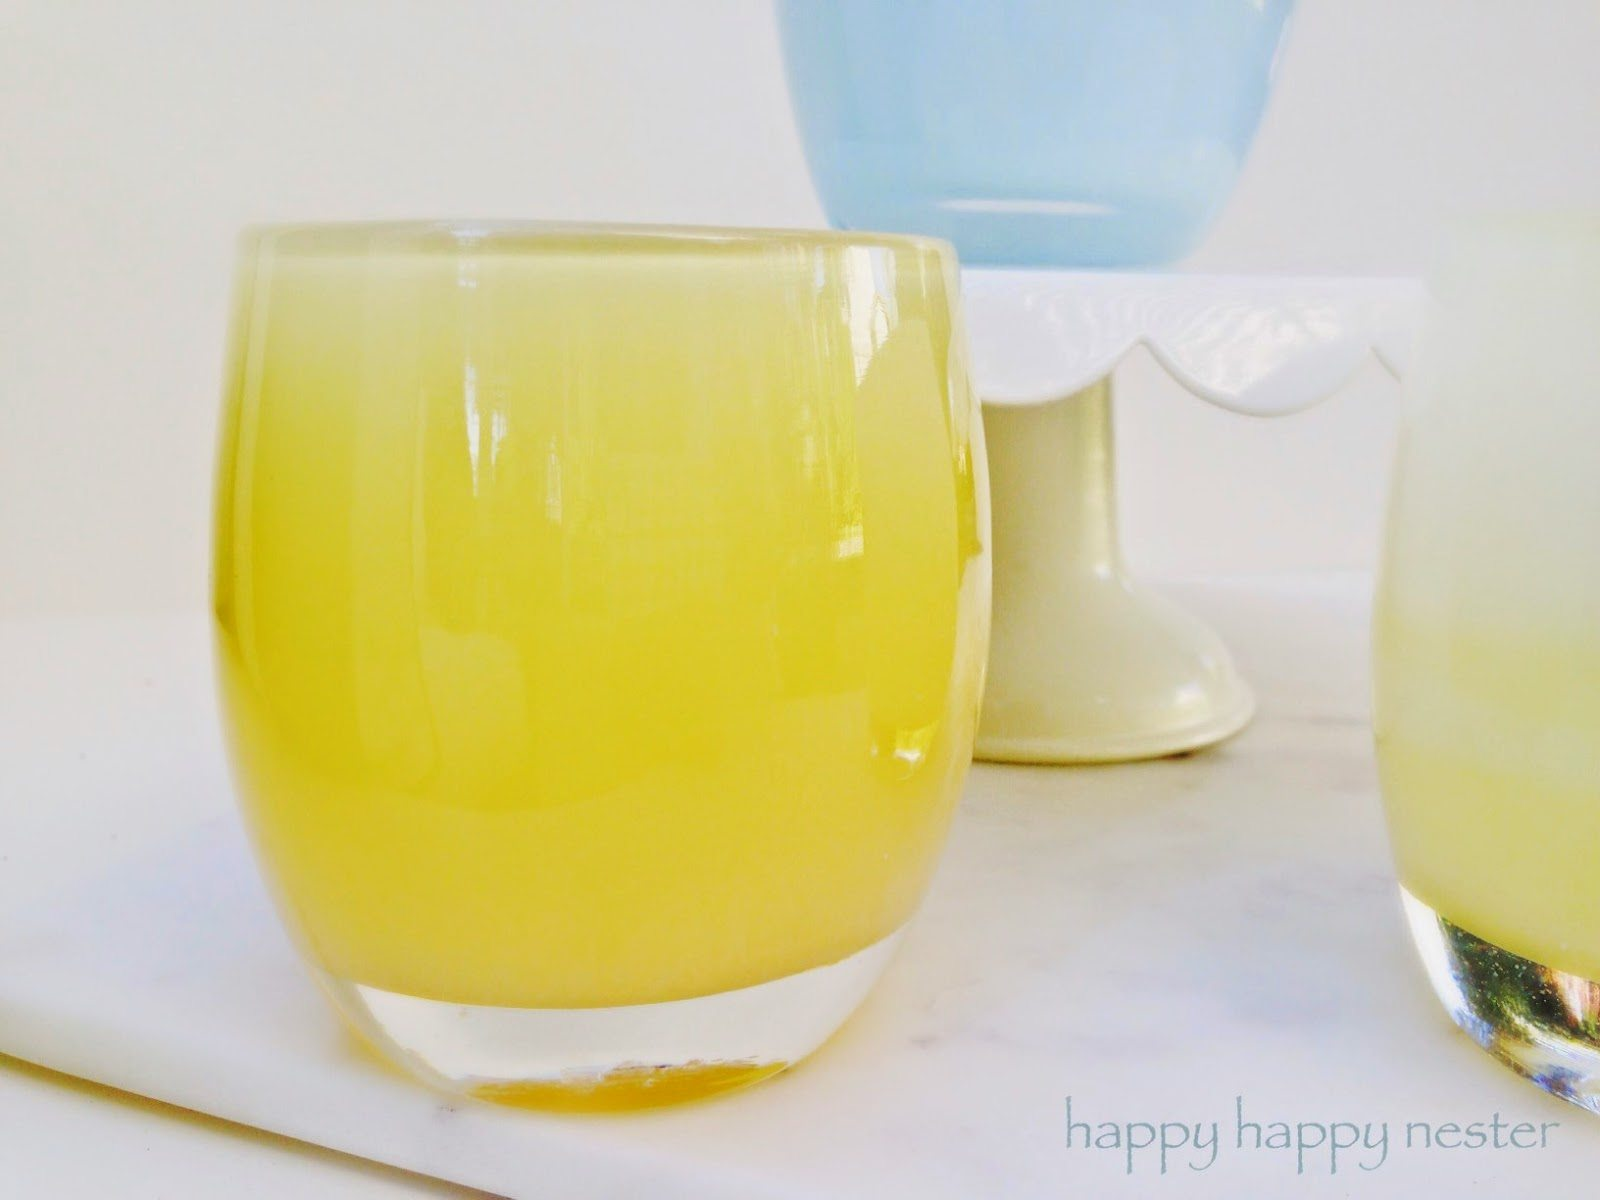 Seattle's Glassybaby Candle Holders